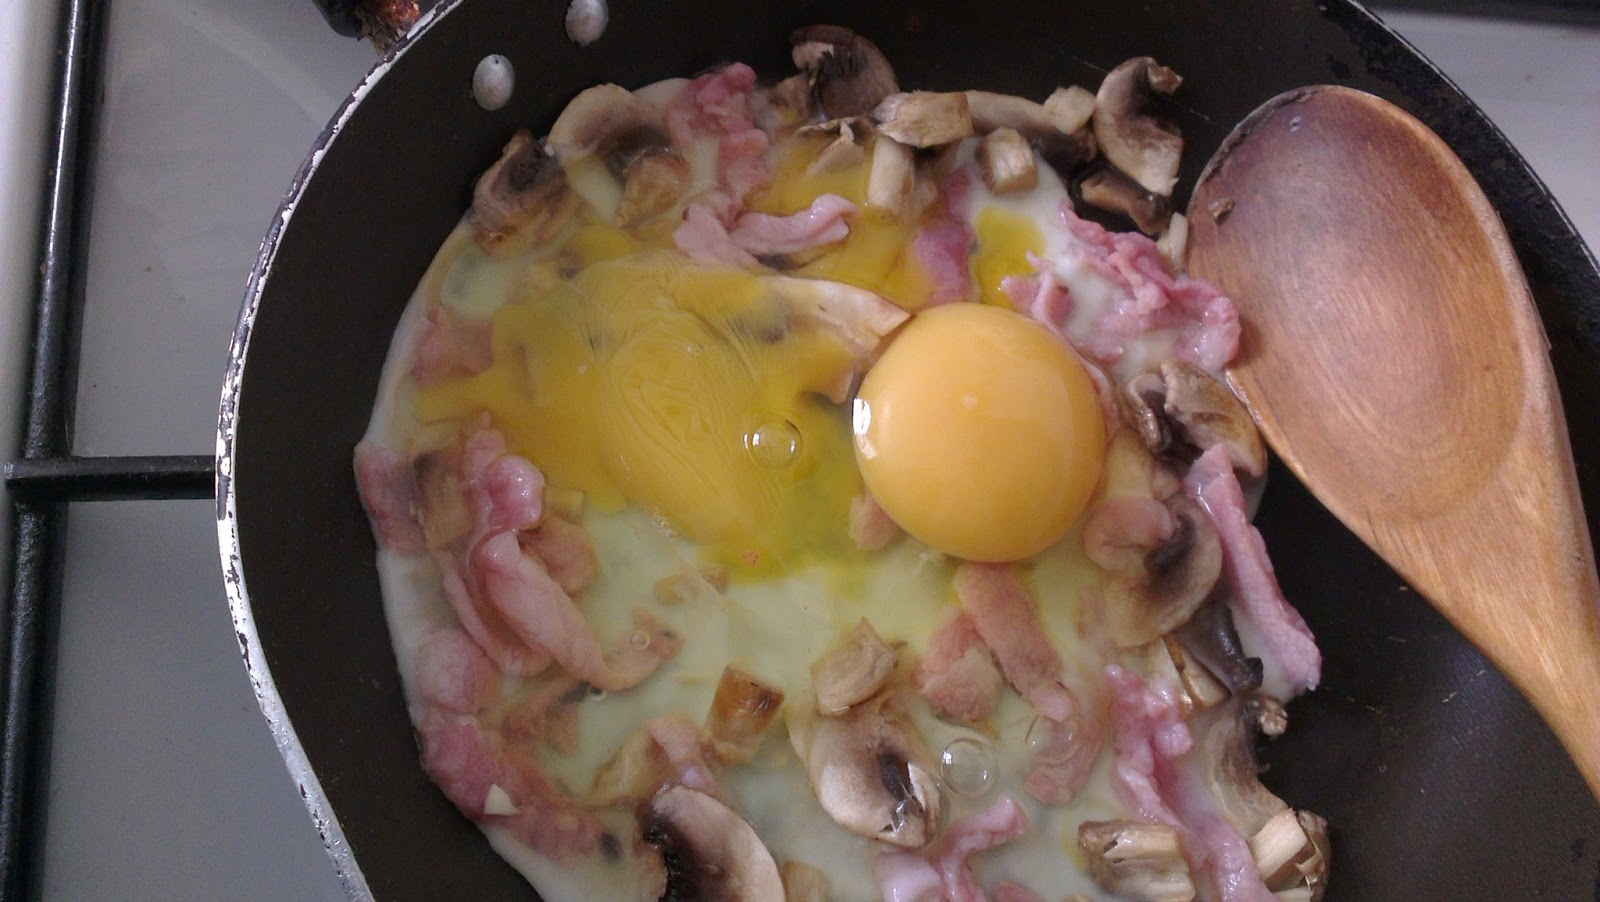 Adding the eggs to the almost cooked mushrooms and bacon